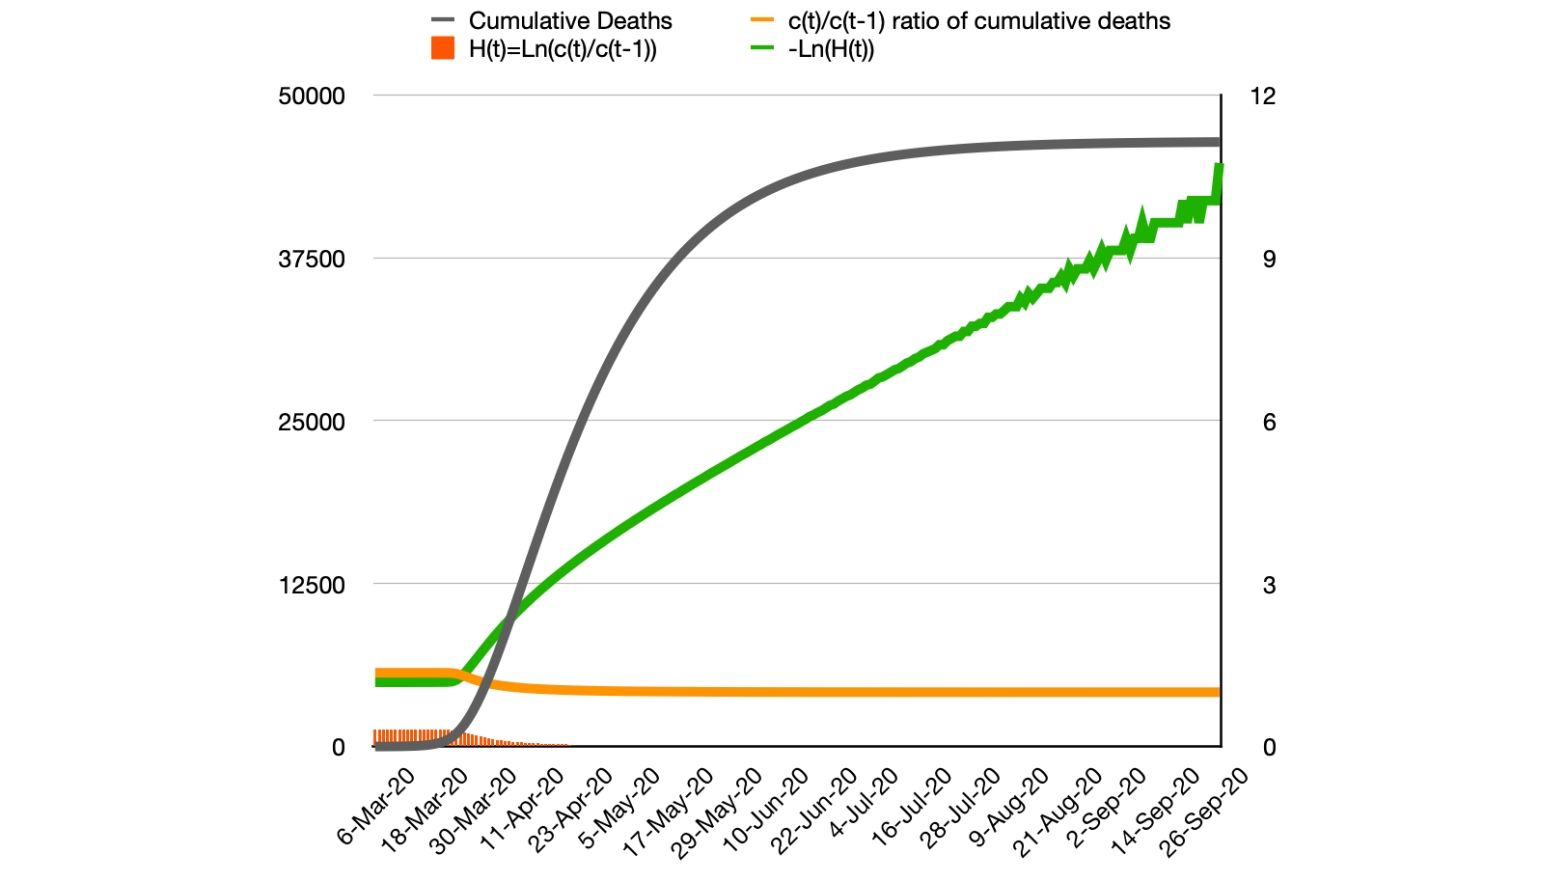 Cumulative, daily and 7-day average model UK deaths, 83%, 6th March - 30th Sep, with the daily ratio of cumulative deaths, and the H(t) function, the natural logarithm of that ratio, and the negative natural log of H(t)